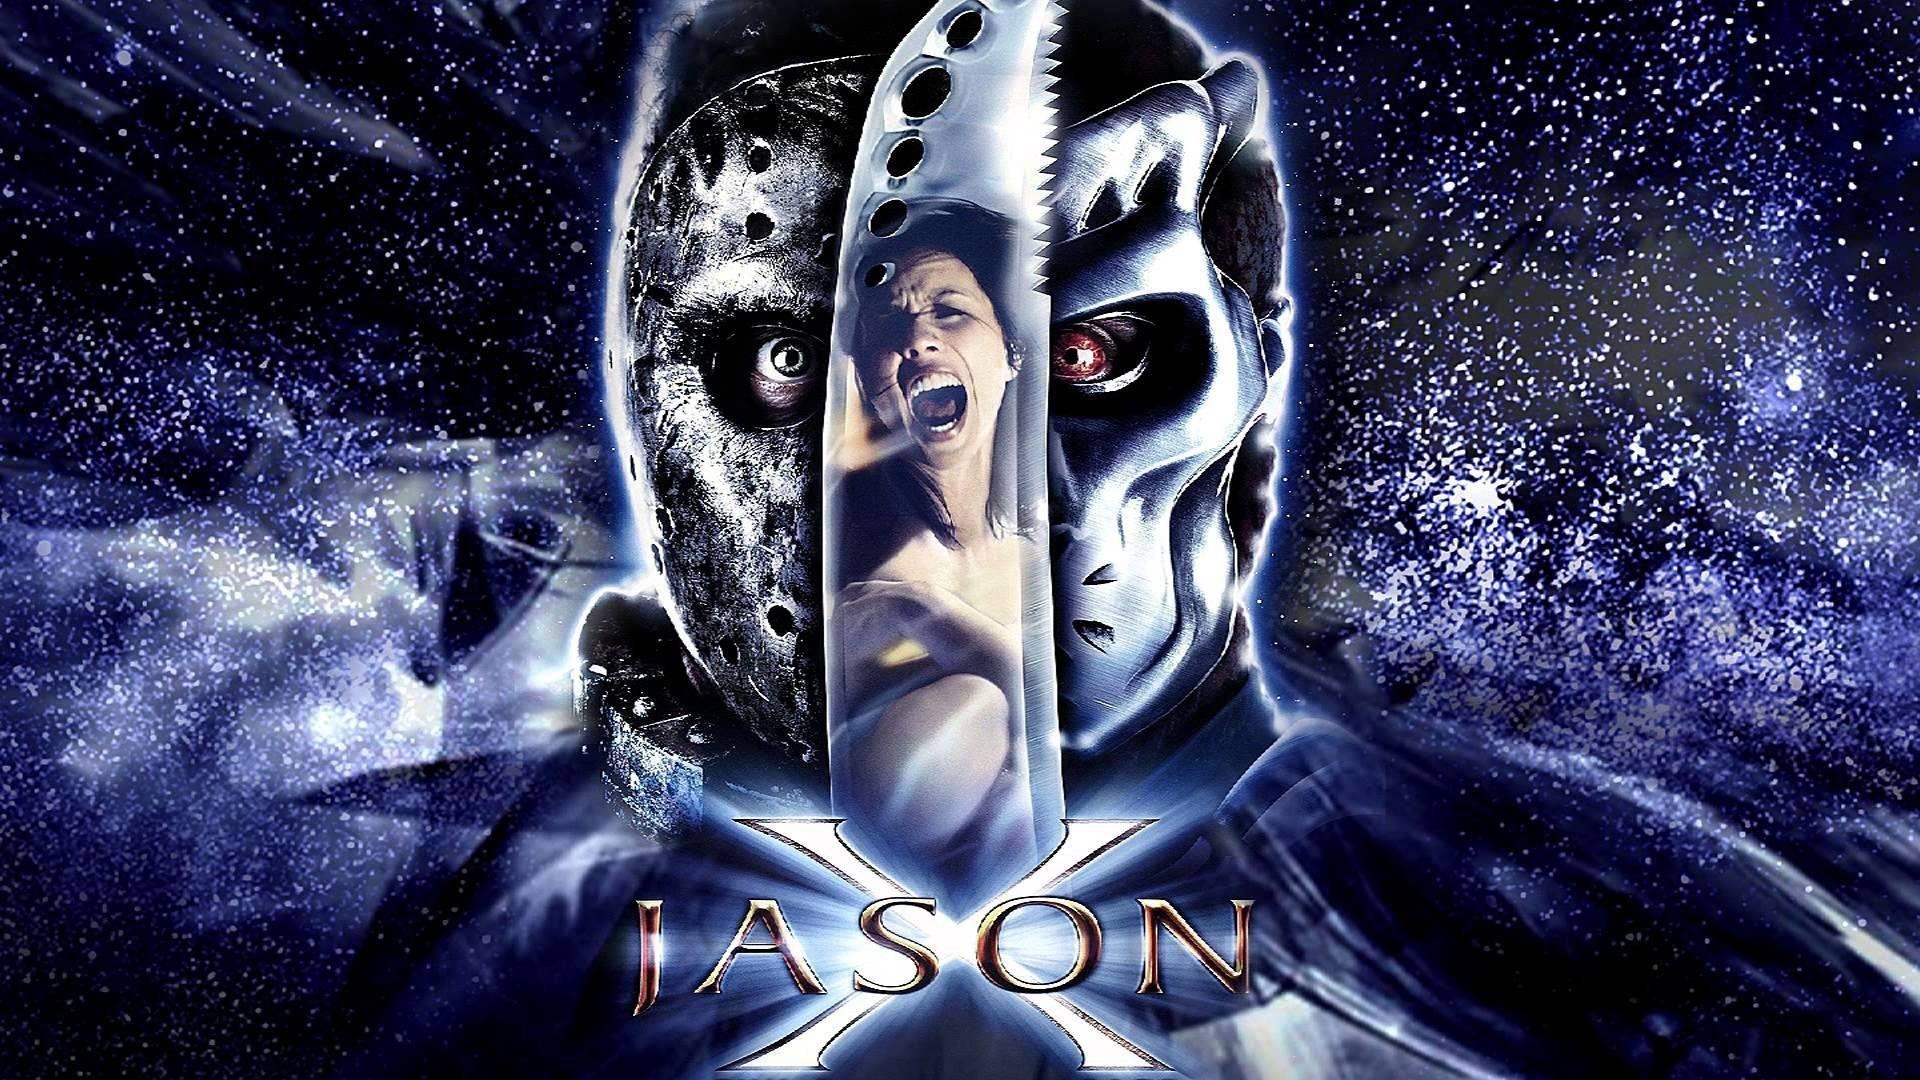 FRIDAY 13TH dark horror violence killer jason thriller ...